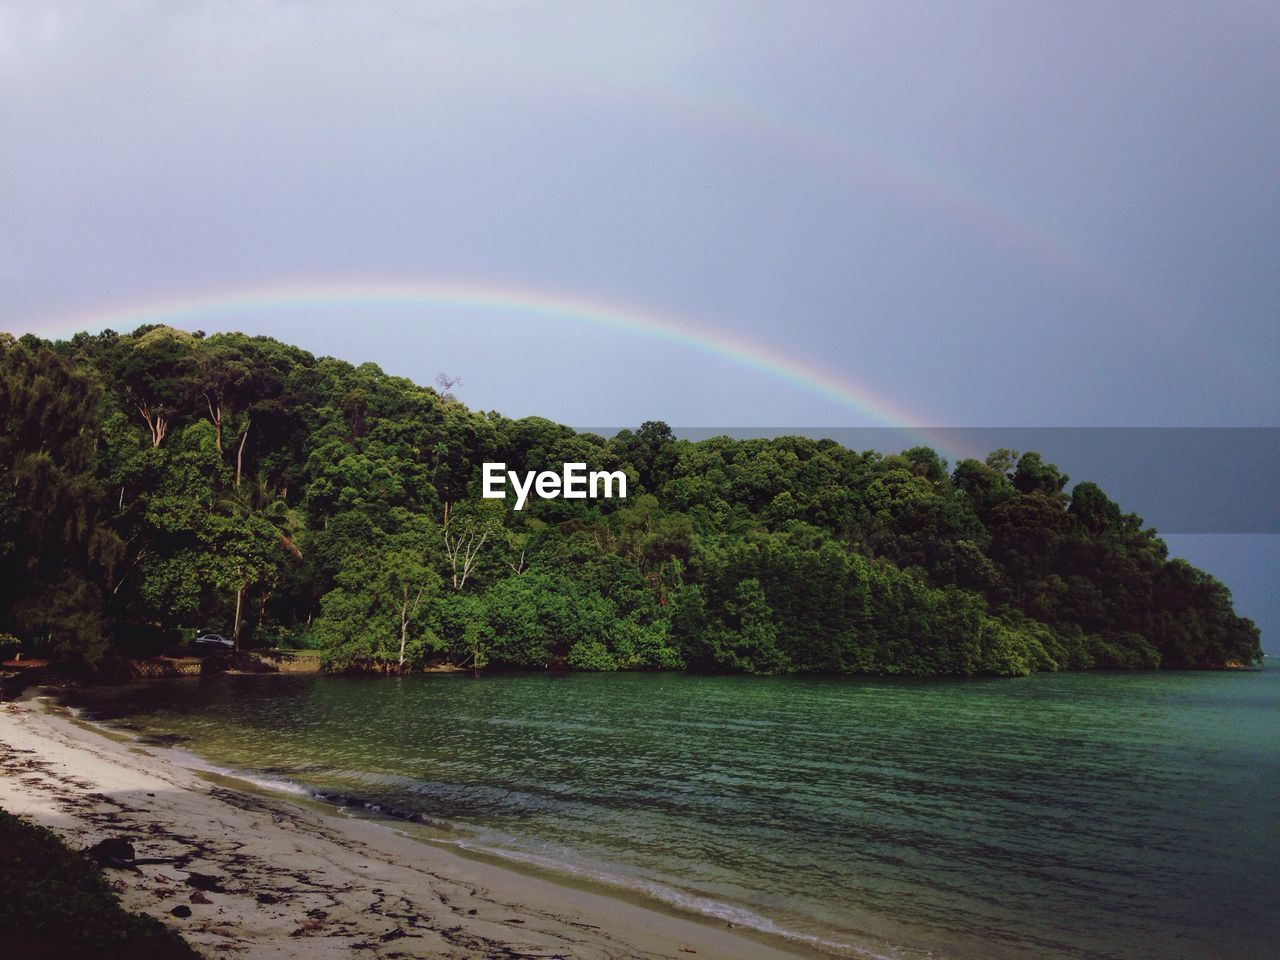 rainbow, double rainbow, beauty in nature, nature, idyllic, scenics, tranquility, no people, tranquil scene, water, day, outdoors, sea, tree, sky